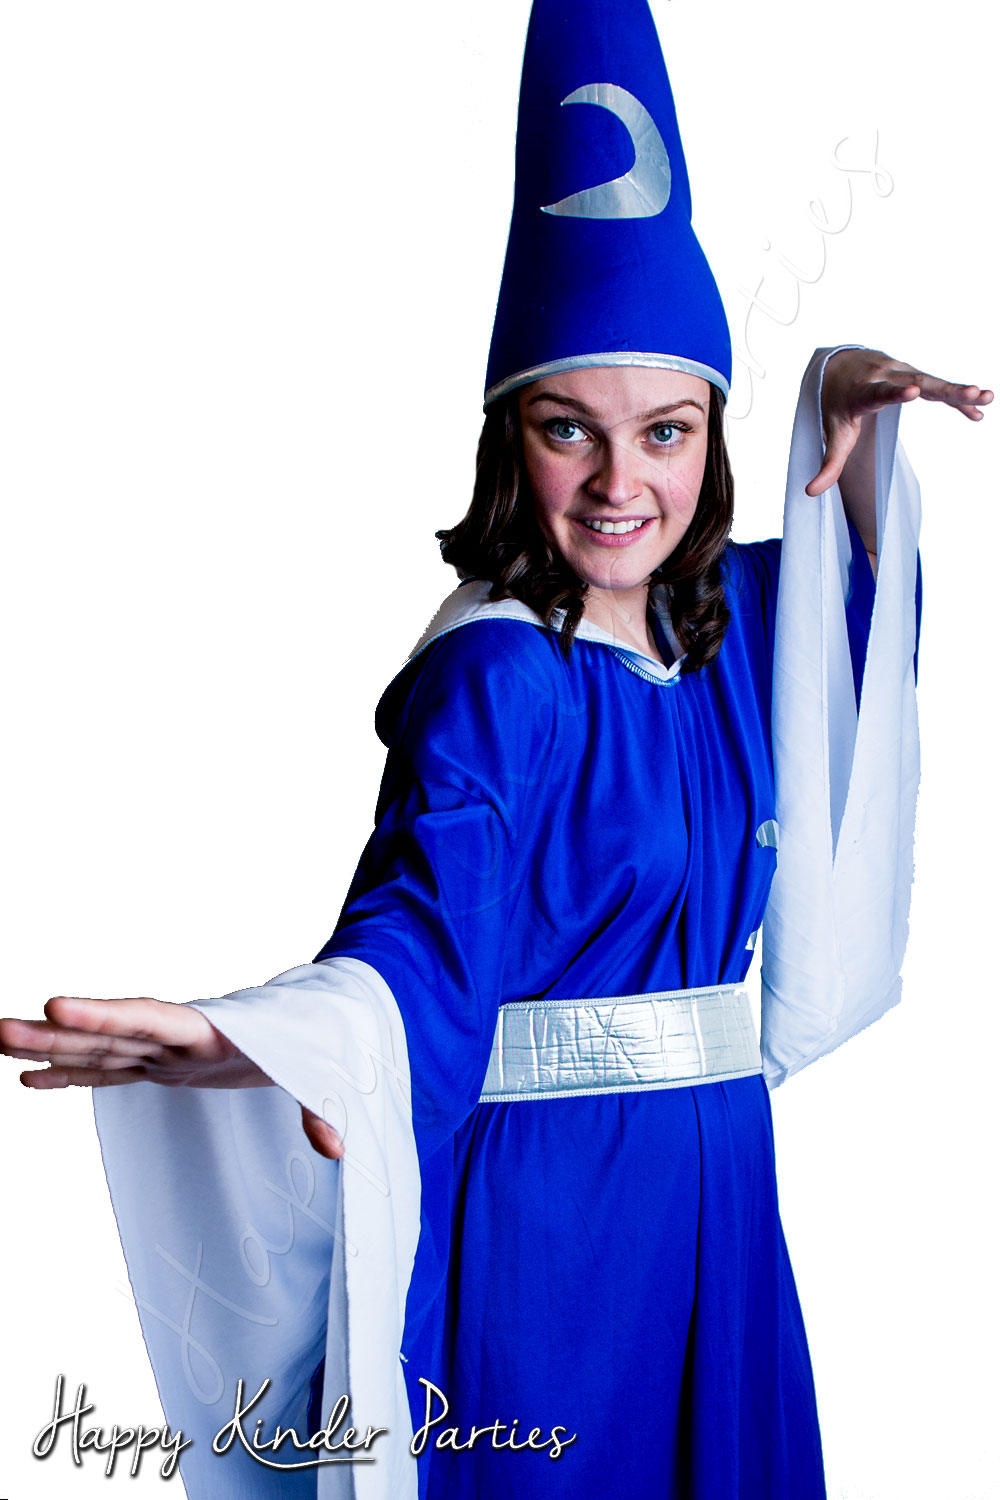 Wizard Childrens Party Entertainer Costume